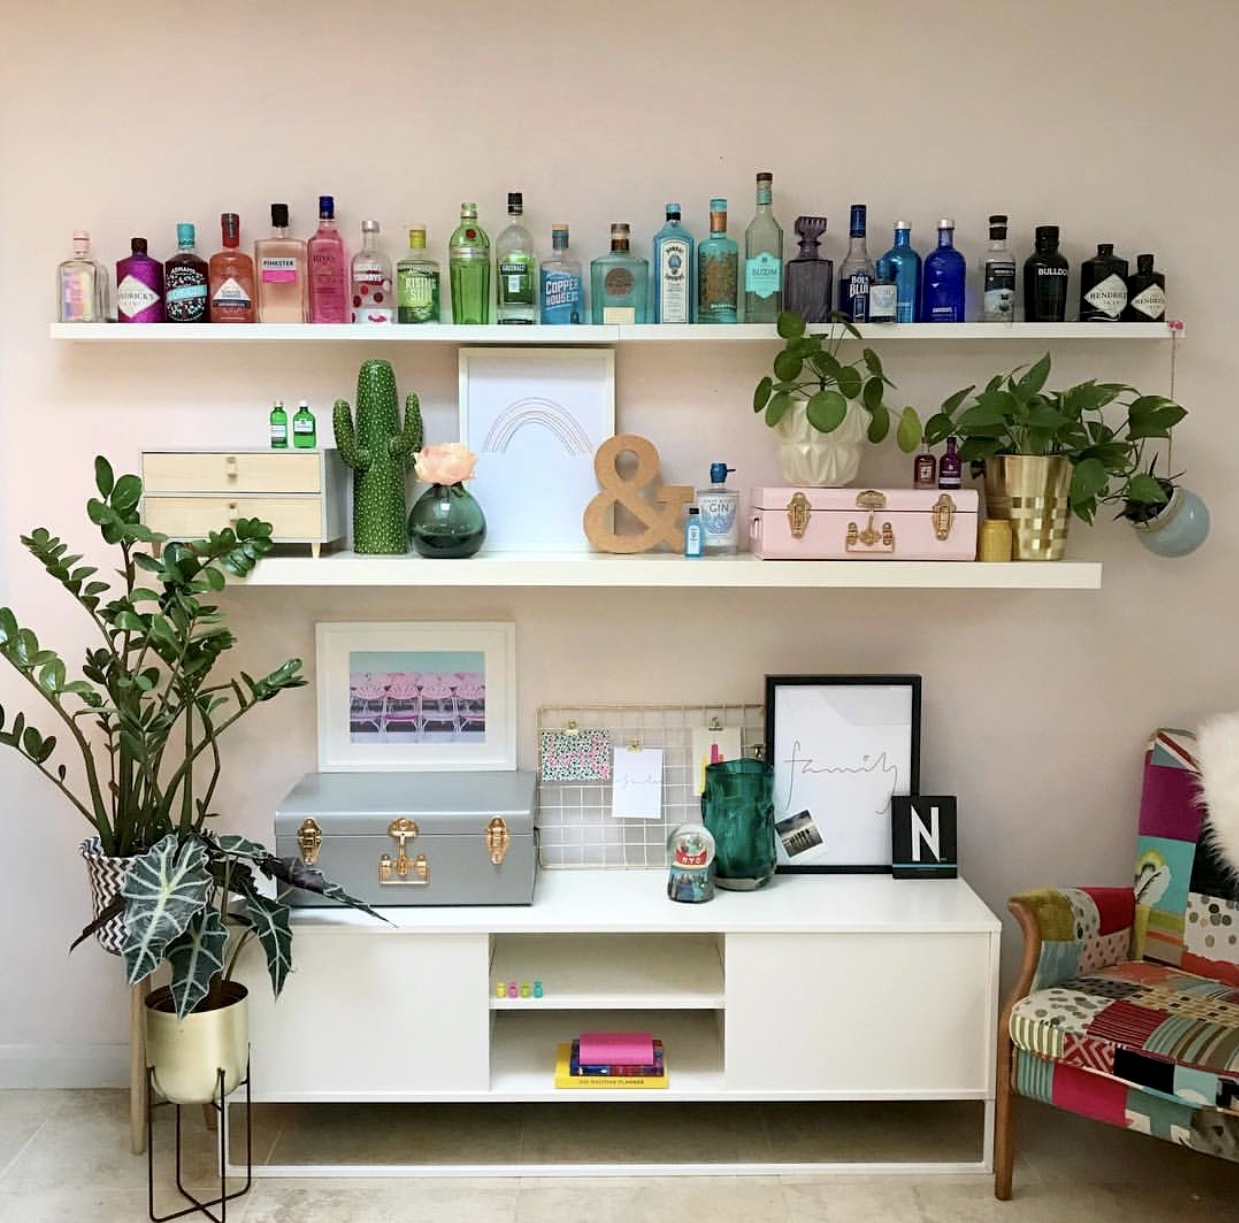 Vickie's Gin rainbow shelf is the stuff of dreams........ It just makes me smile looking at it..... I wish I could sit in that chair and sample each and every one ;)    @inpolife